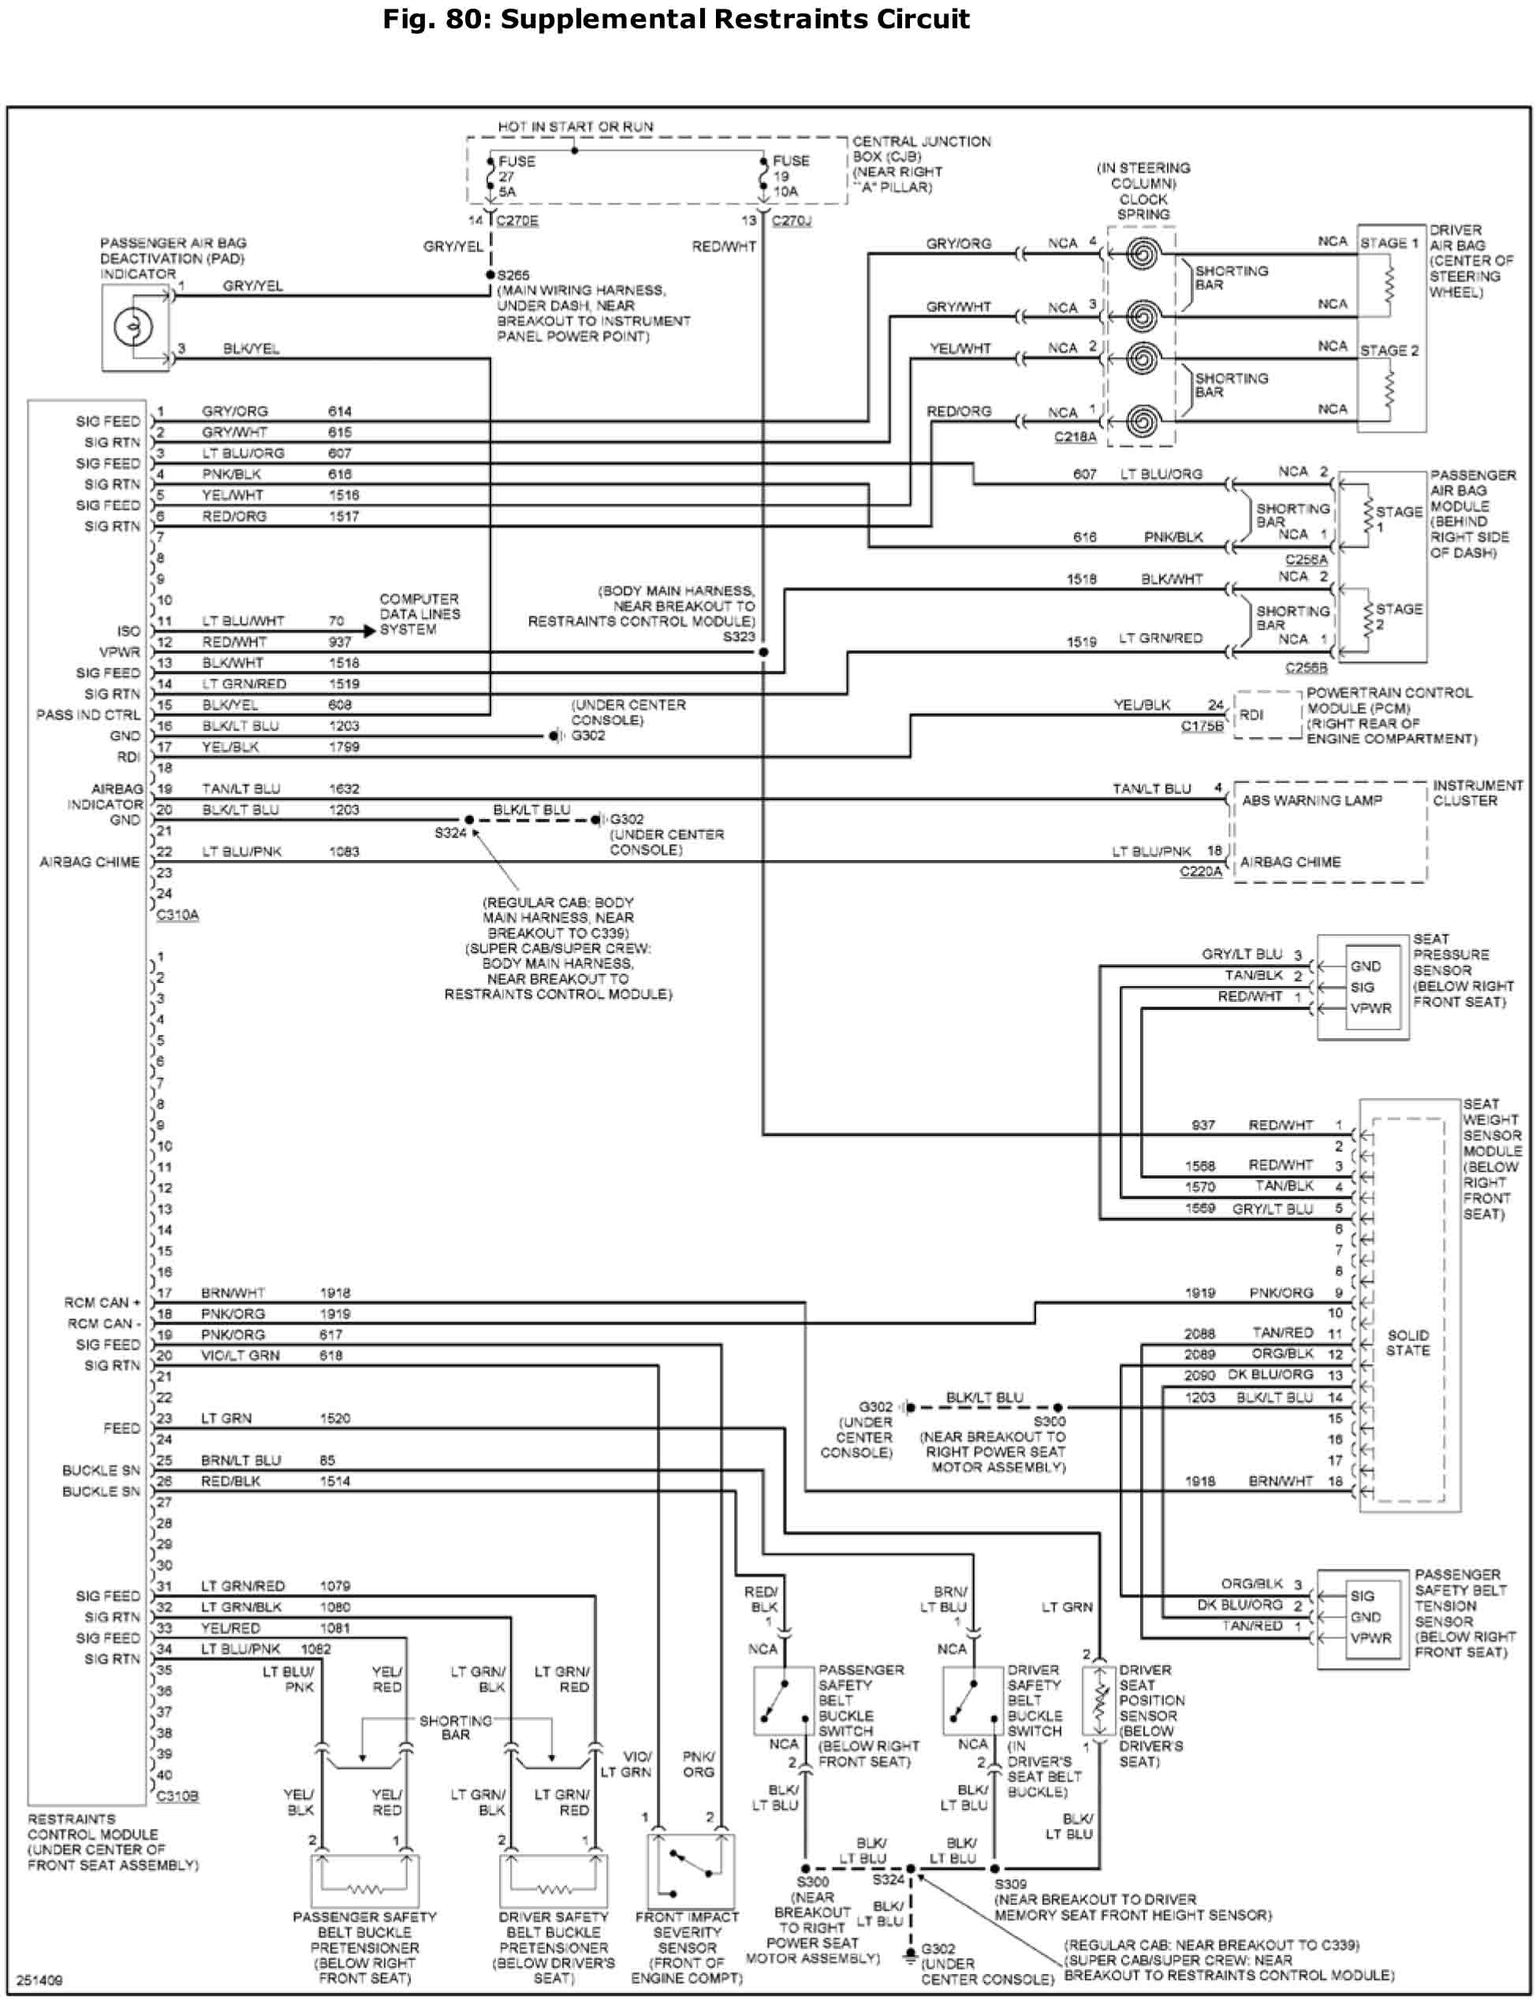 80 07f150_airbag_wiring_diagram_fe541fcfb14ed53b51926a11211ac10867cd5d95 ford abs wiring diagram ford hid headlights wiring diagram abs wiring diagrams at crackthecode.co